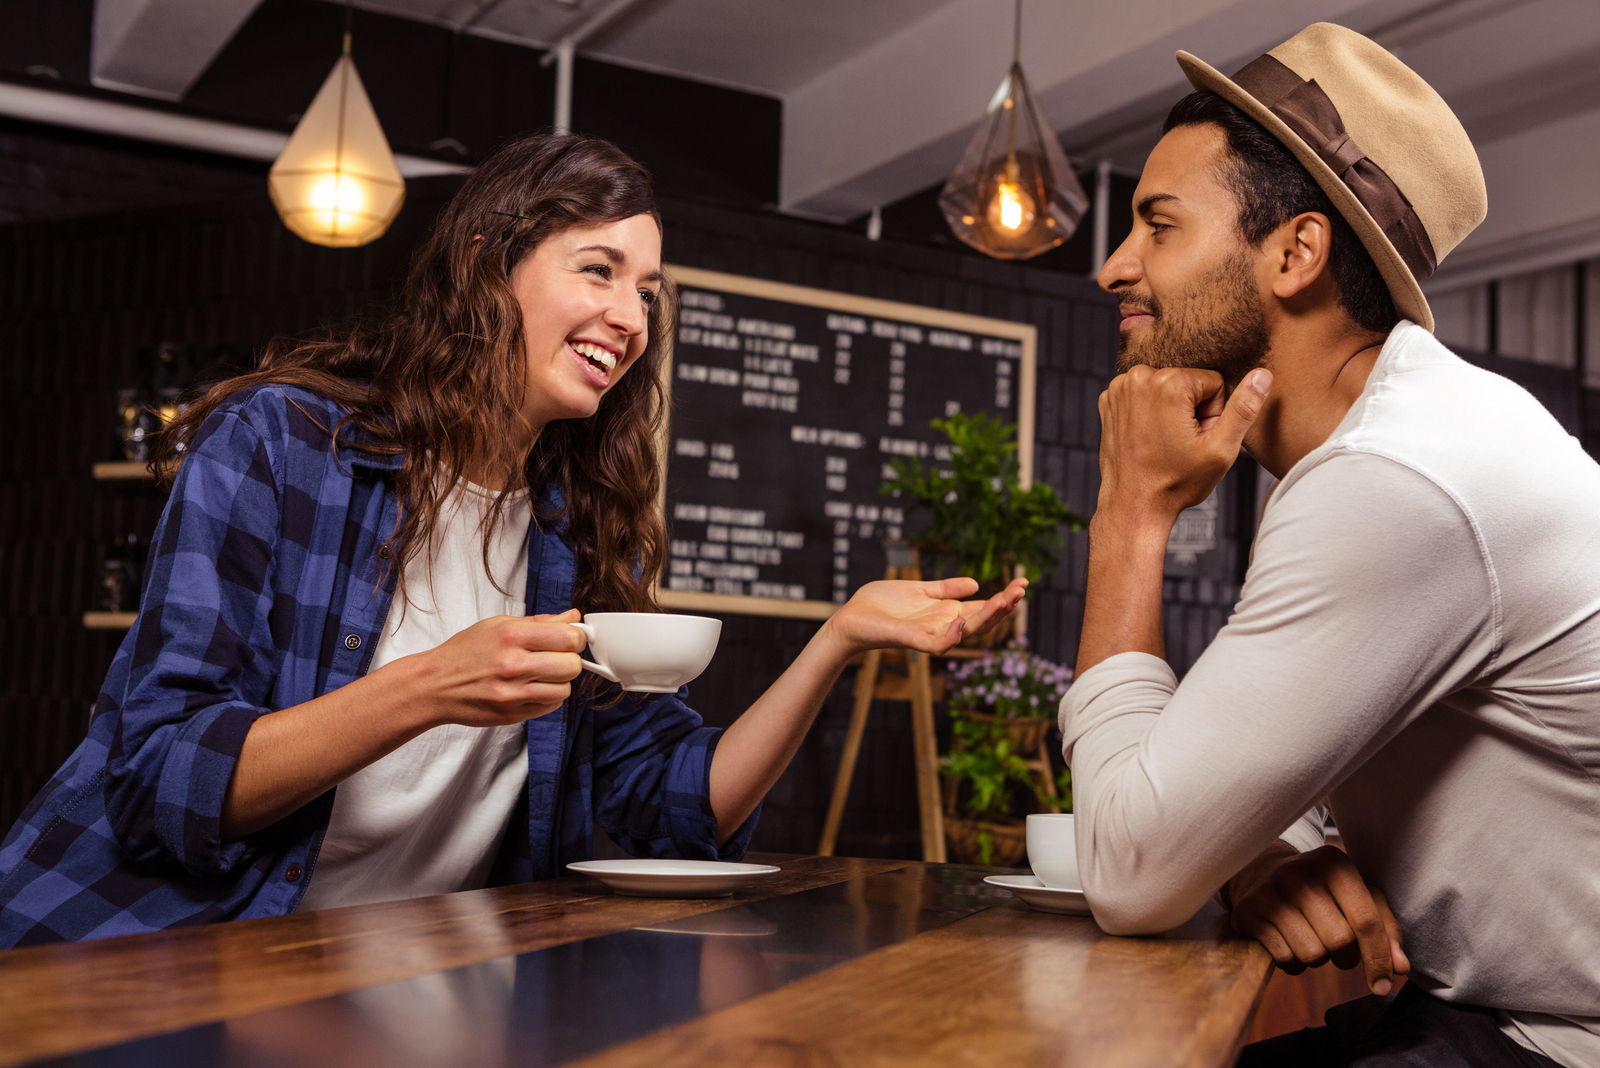 a smiling woman holding a cup of coffee and talking to a man